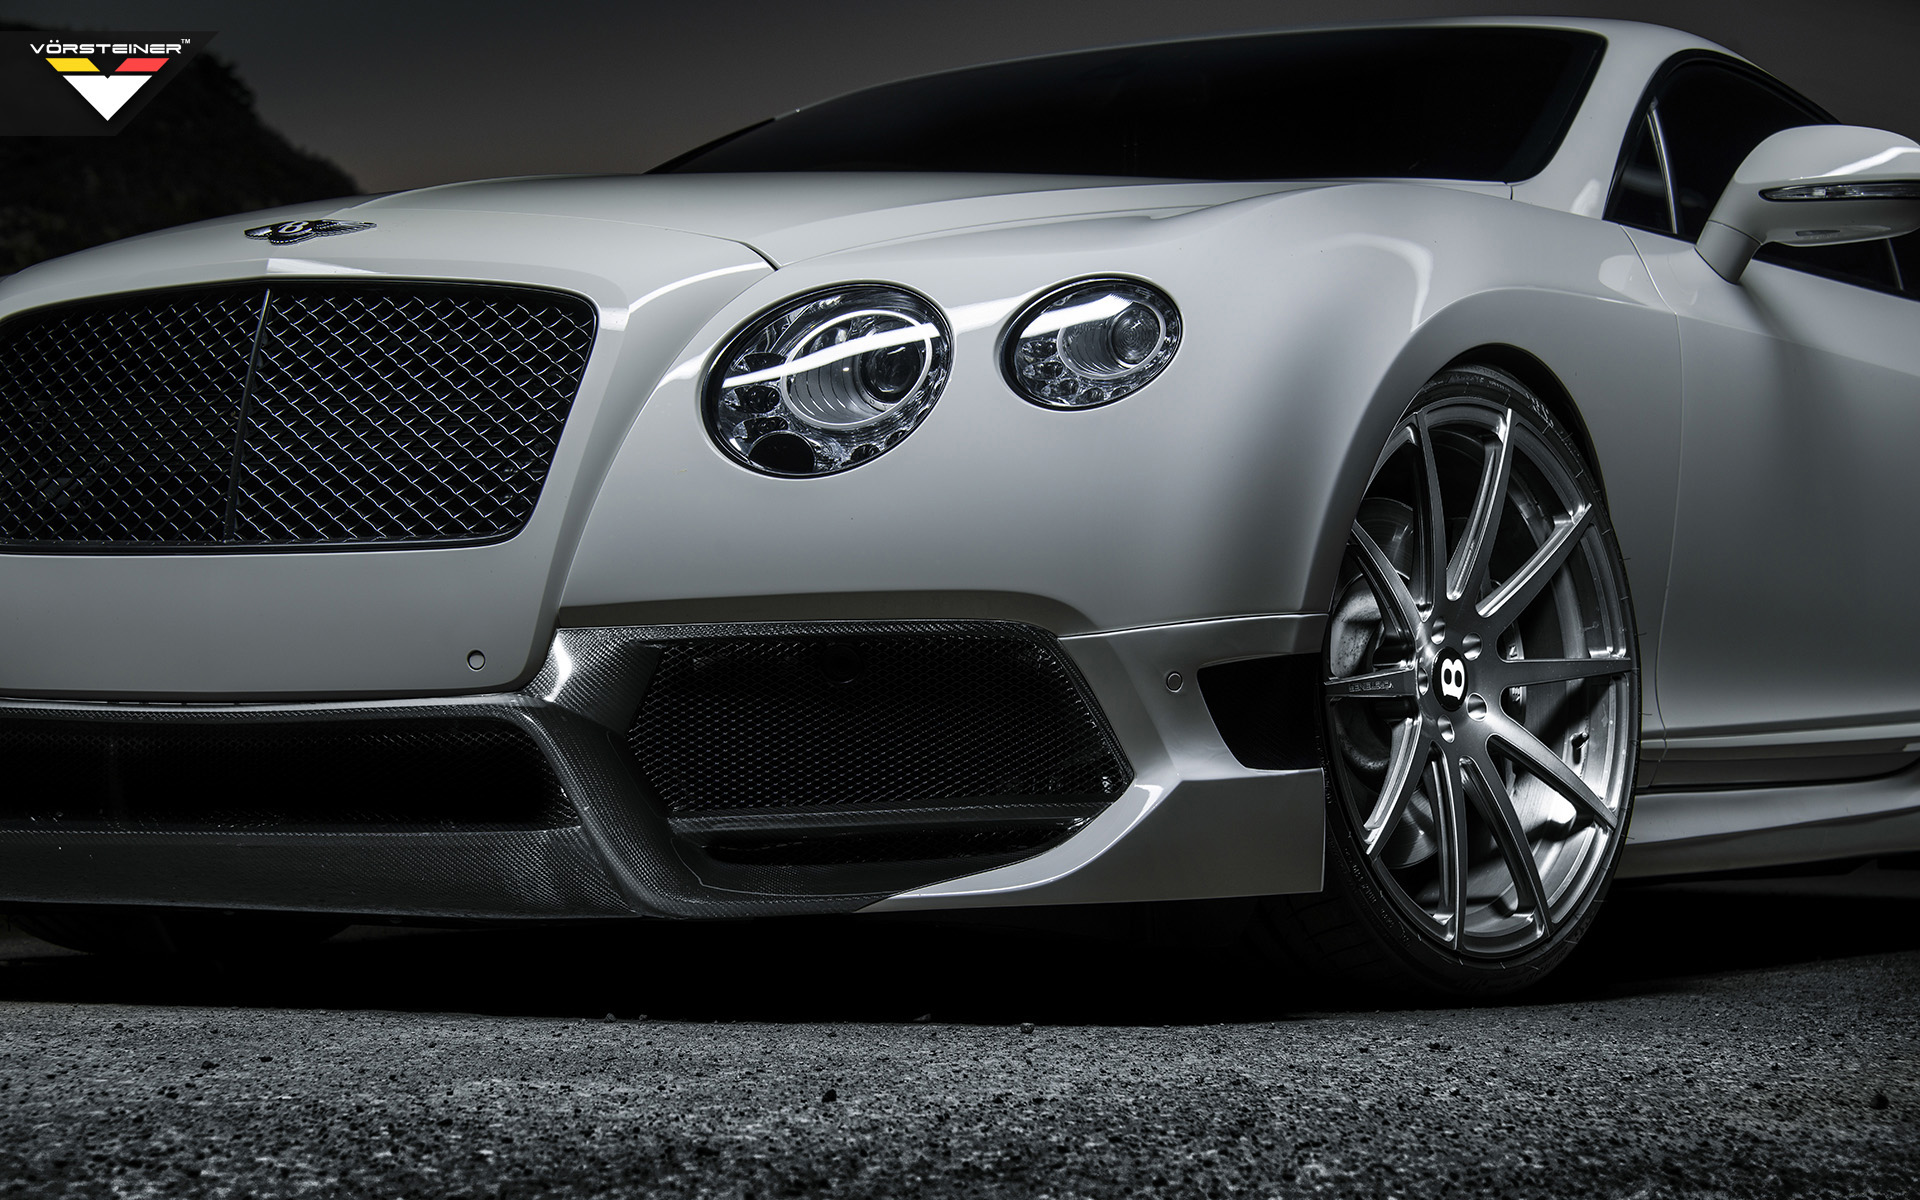 Bentley Car Wallpaper >> 2013 Vorsteiner Bentley Continental Gt Br10 Rs 2 Wallpaper Hd